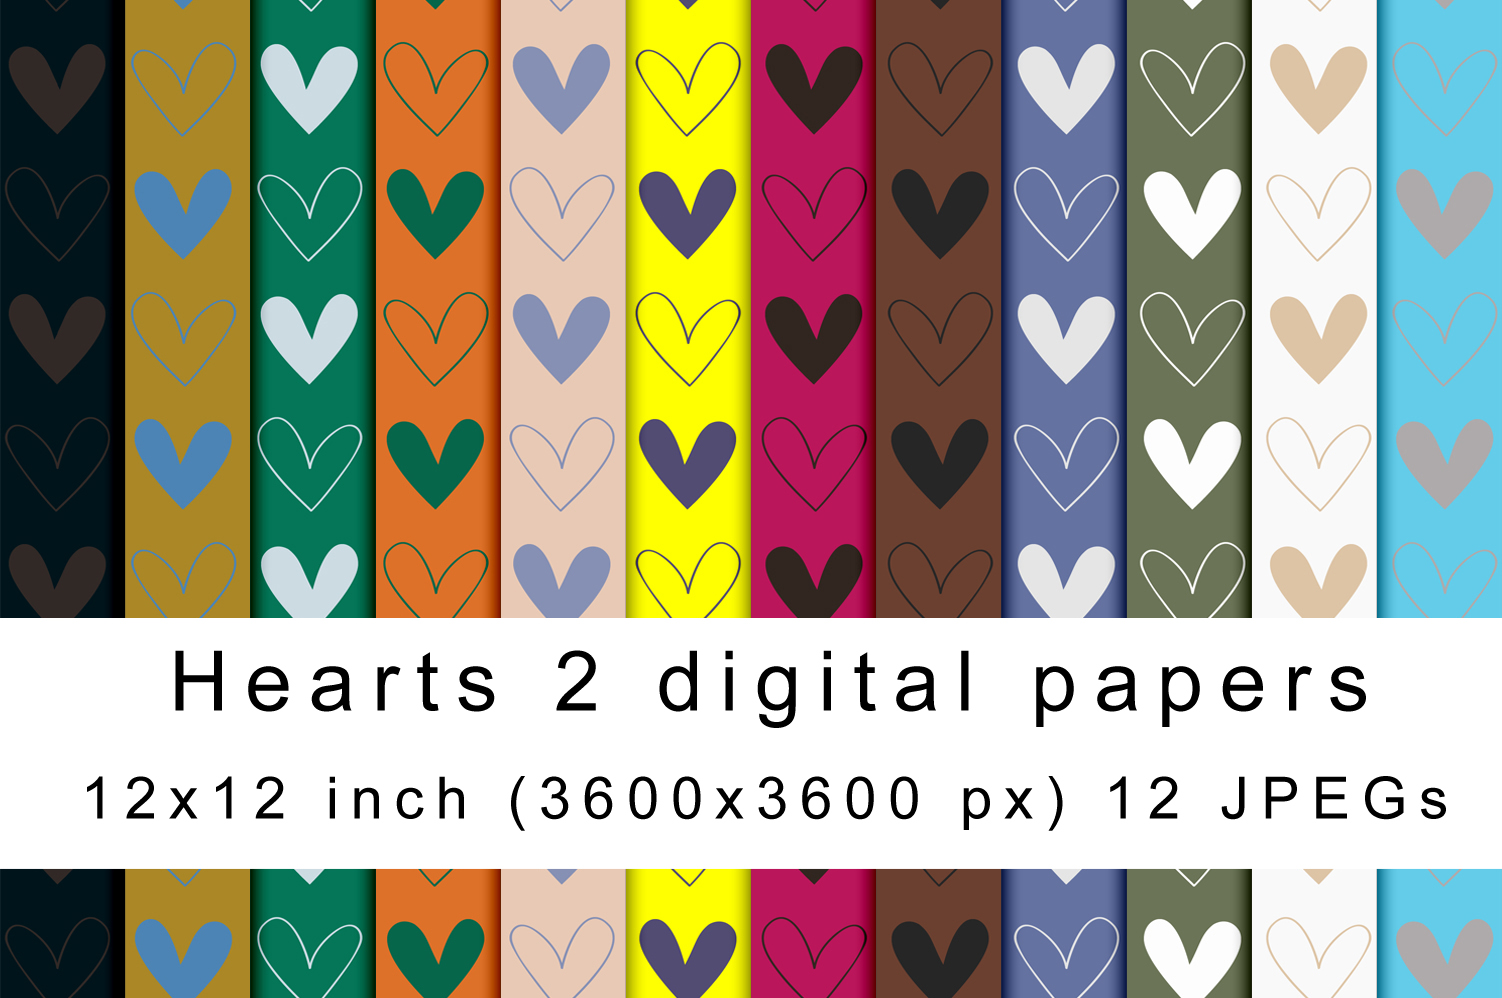 Hearts 2 digital papers example image 1